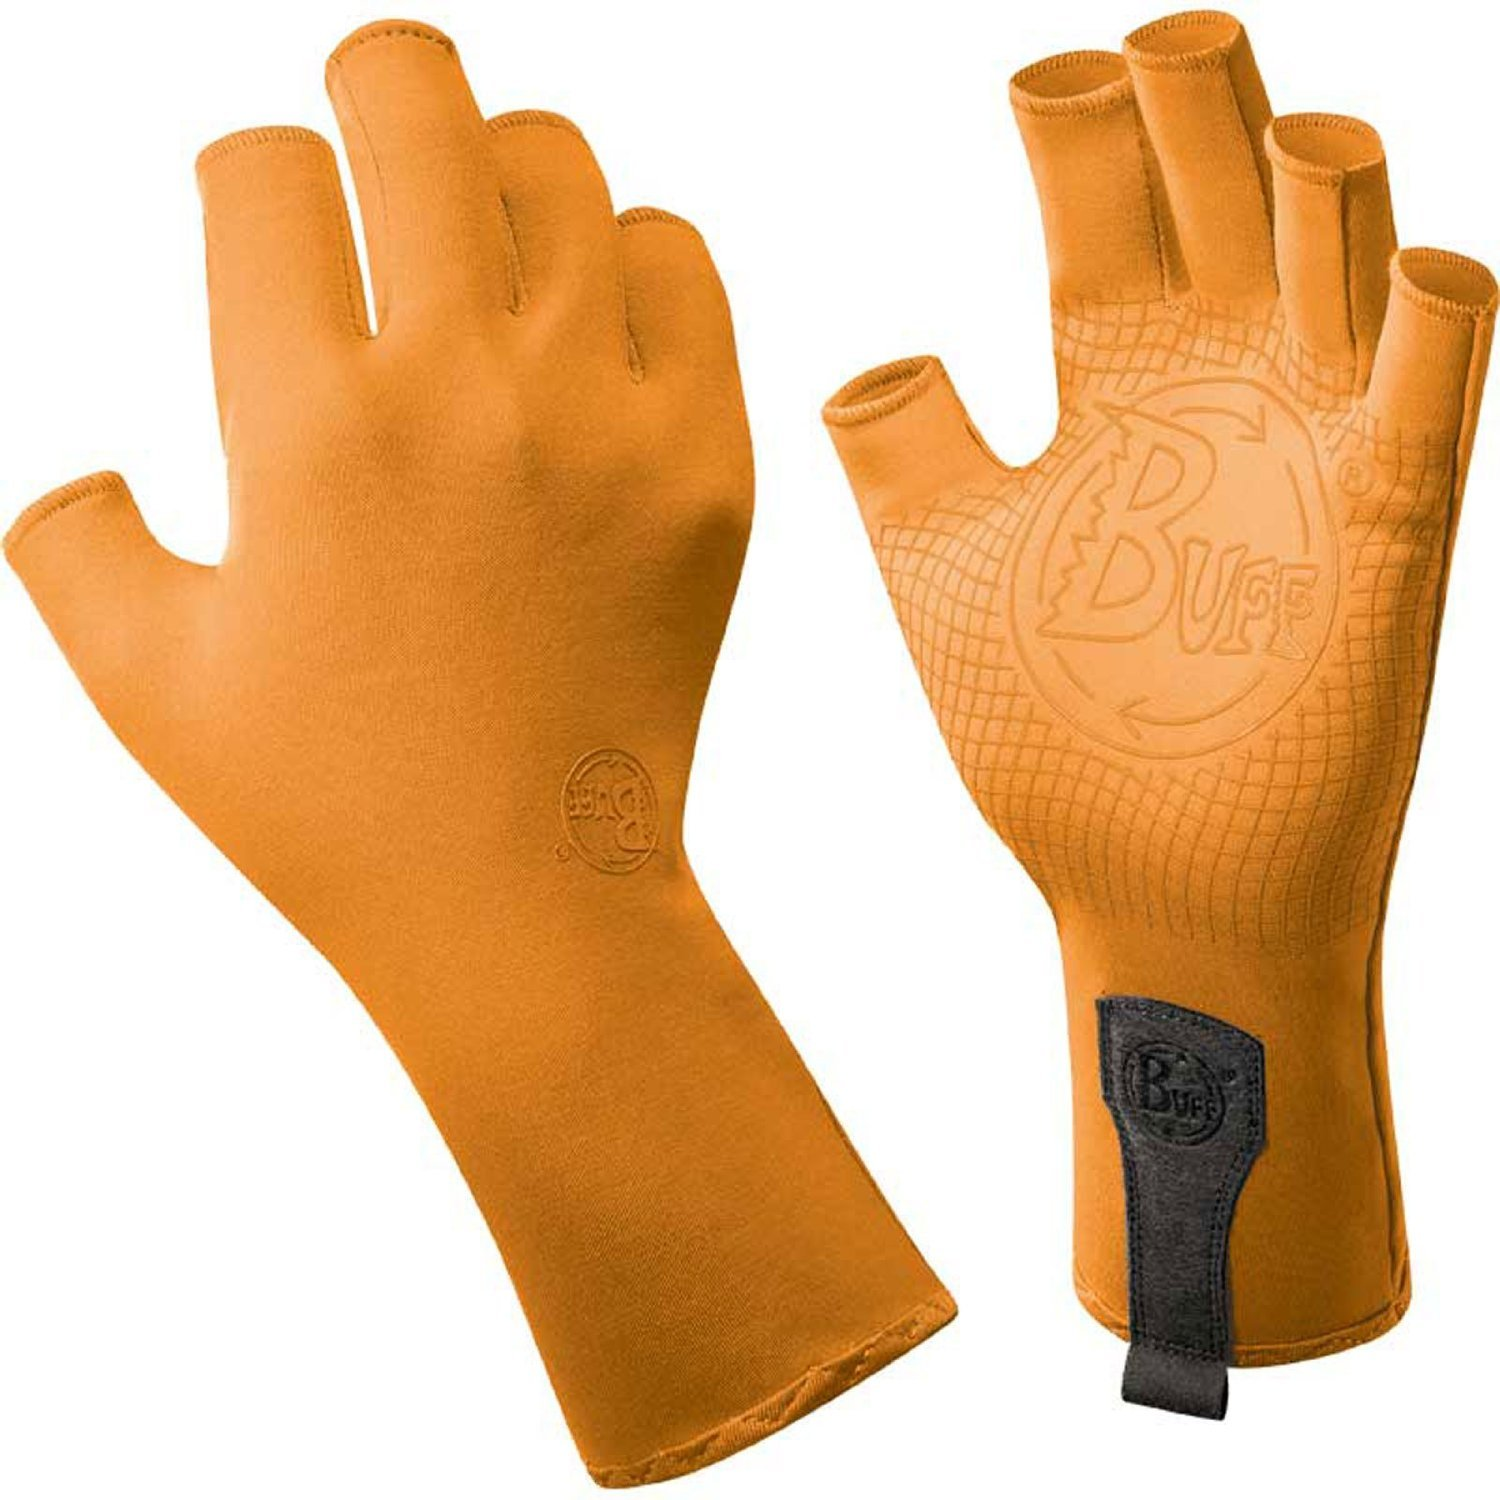 Buff Adult Sport-Series Water Gloves Medium/Large Solar Orange